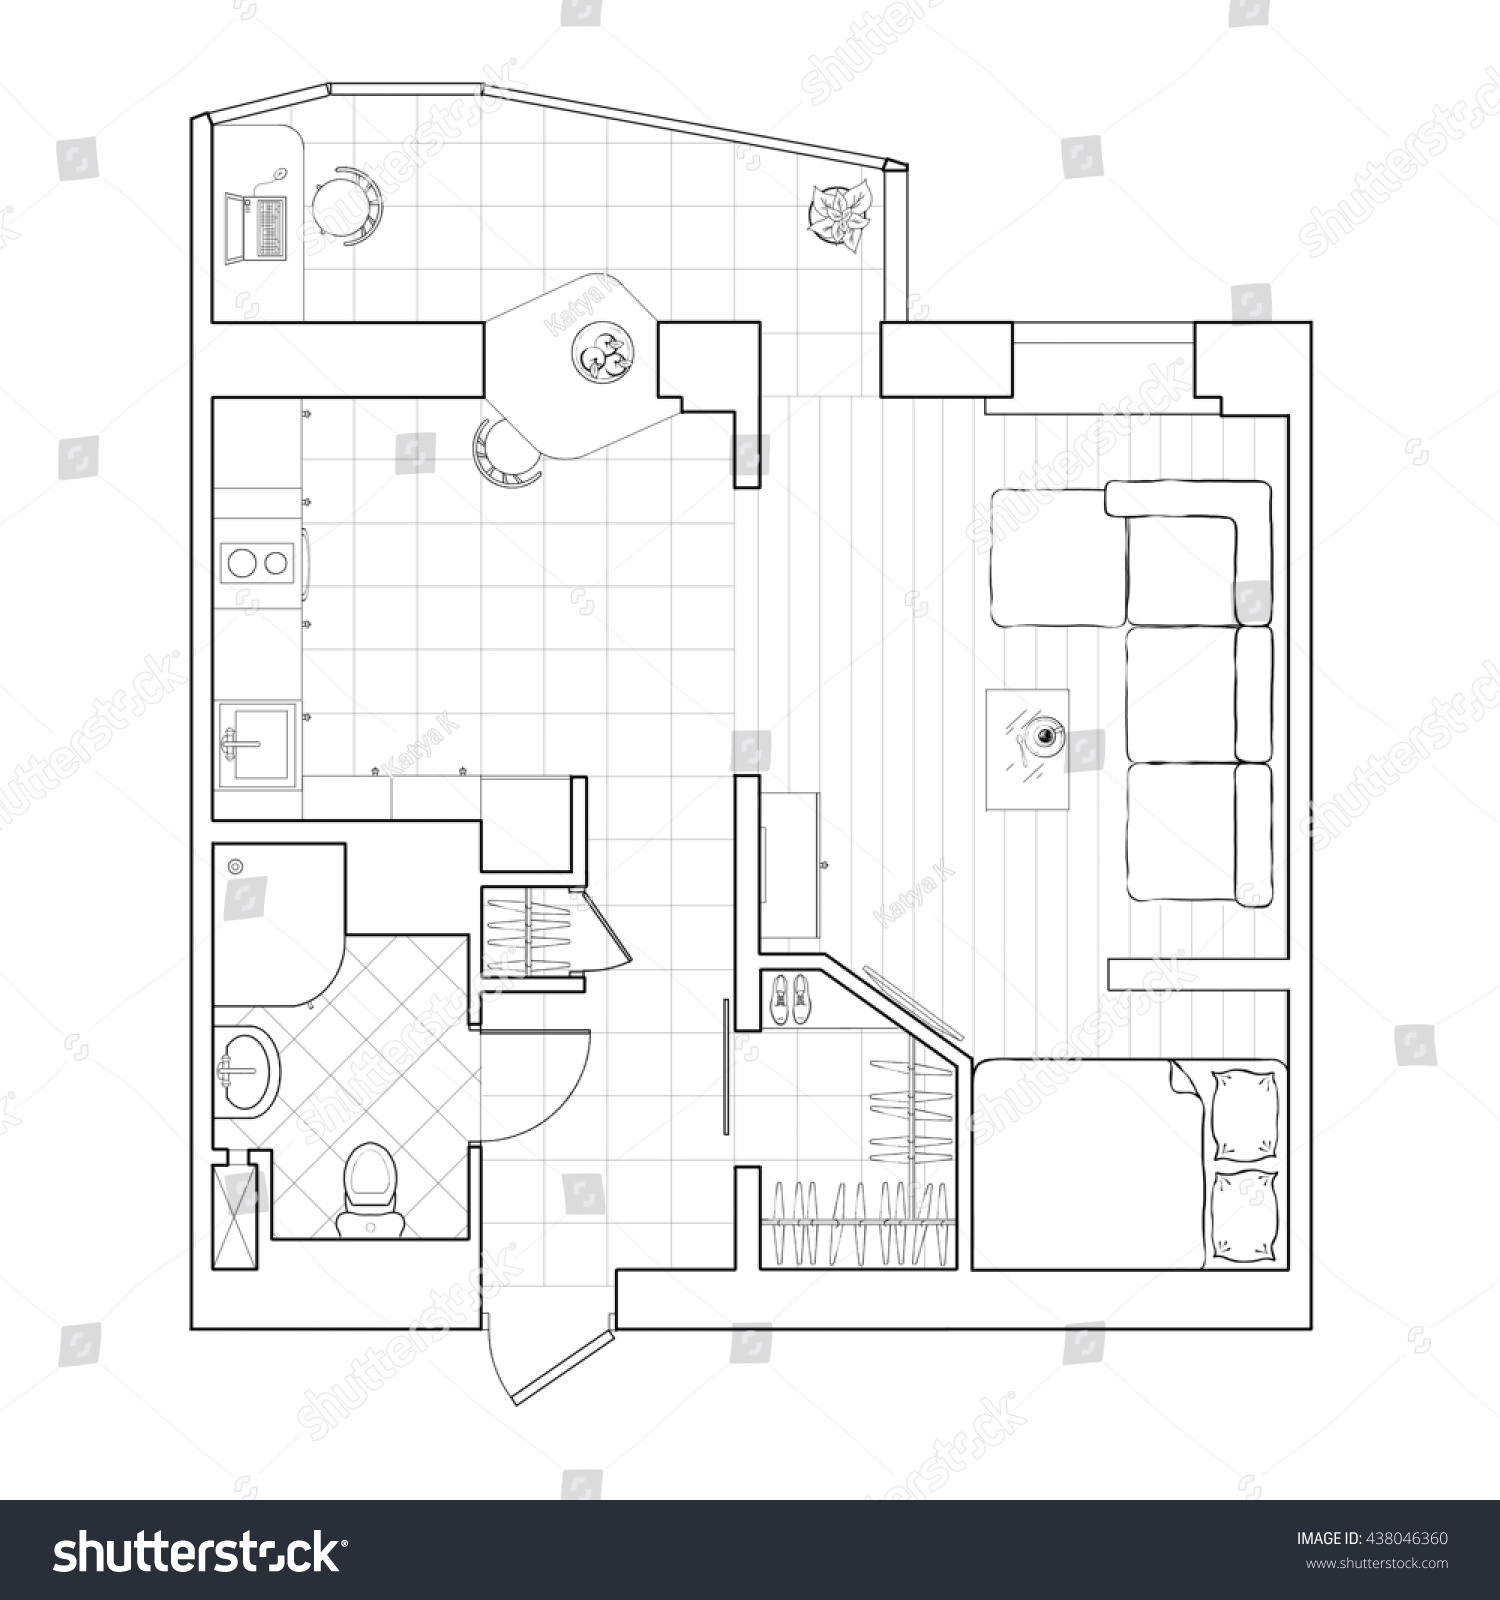 Black white drawing sketch floor plan stock illustration for Floor plan sketch